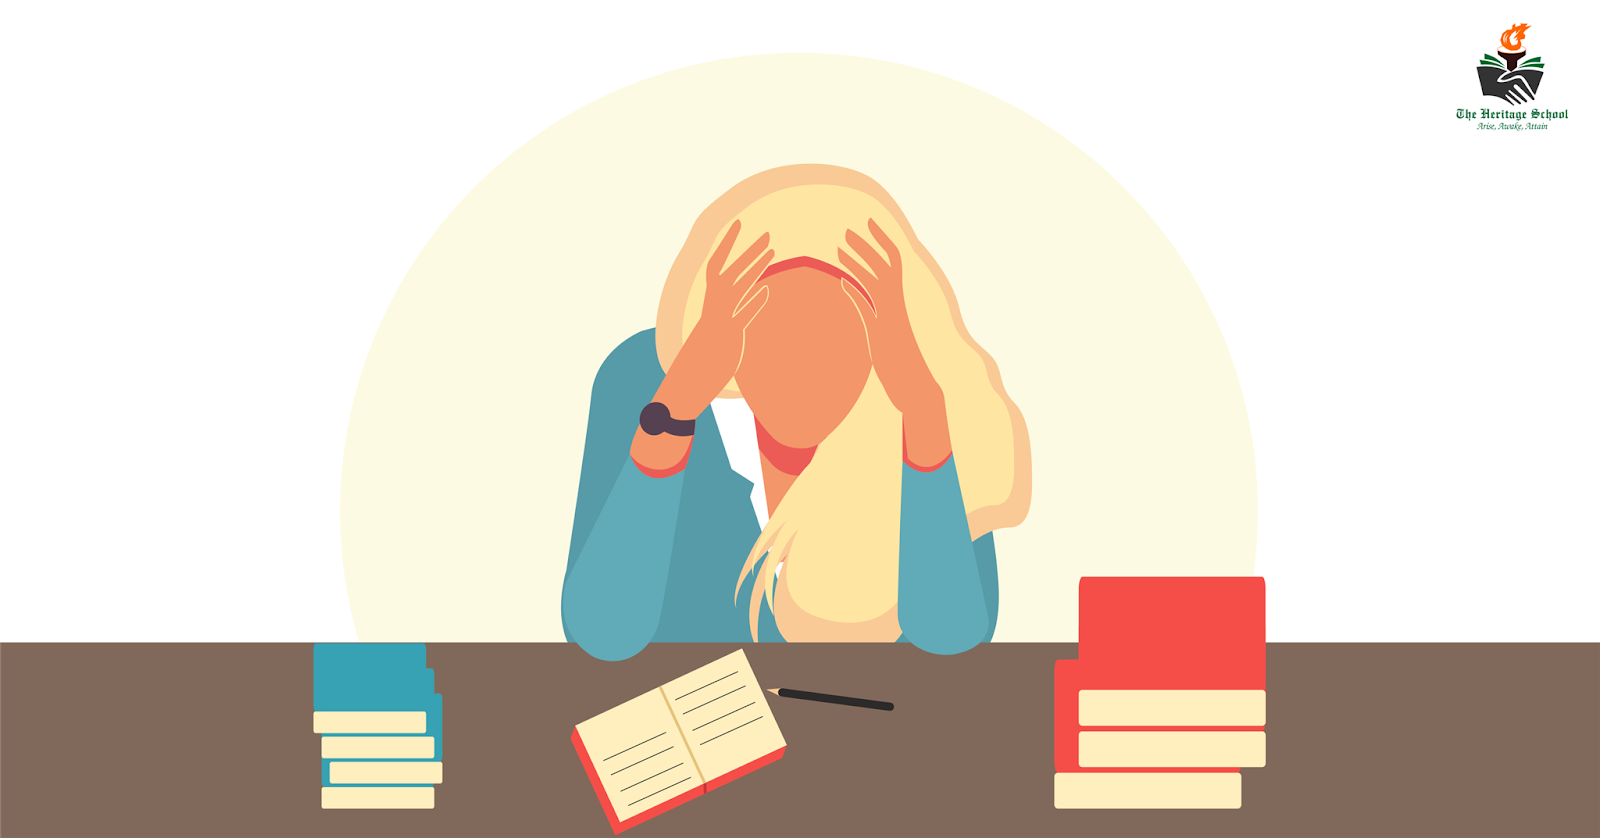 avoid stress while studying At kansas state university, university counseling services also has counselors who can help you learn to be more relaxed while studying and taking tests see also our other information on stress topics: topics.